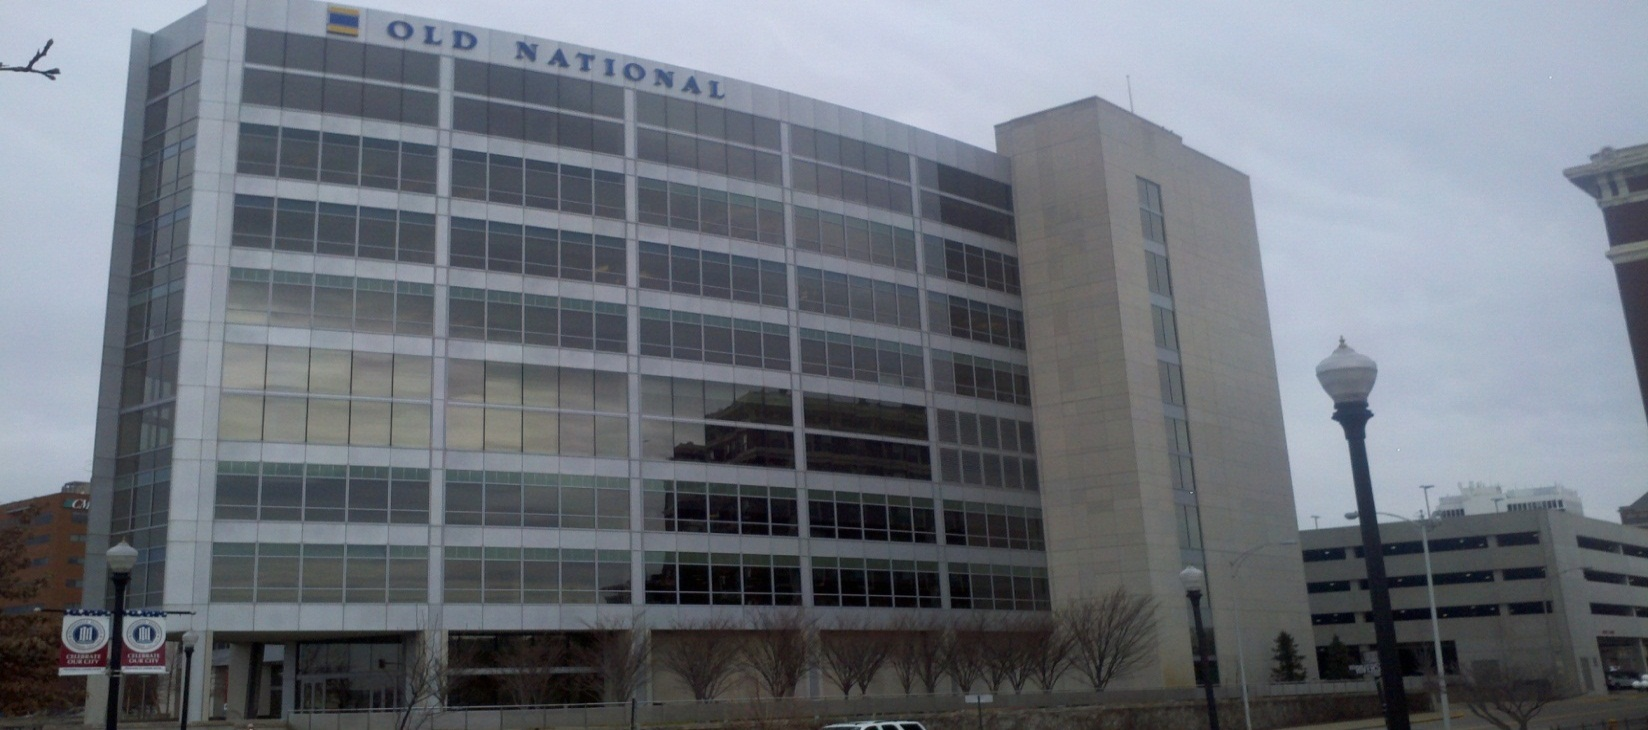 Window tint  Old National office building  Indianapolis IN. Commercial Window Tinting in Indianapolis   Solar Concepts